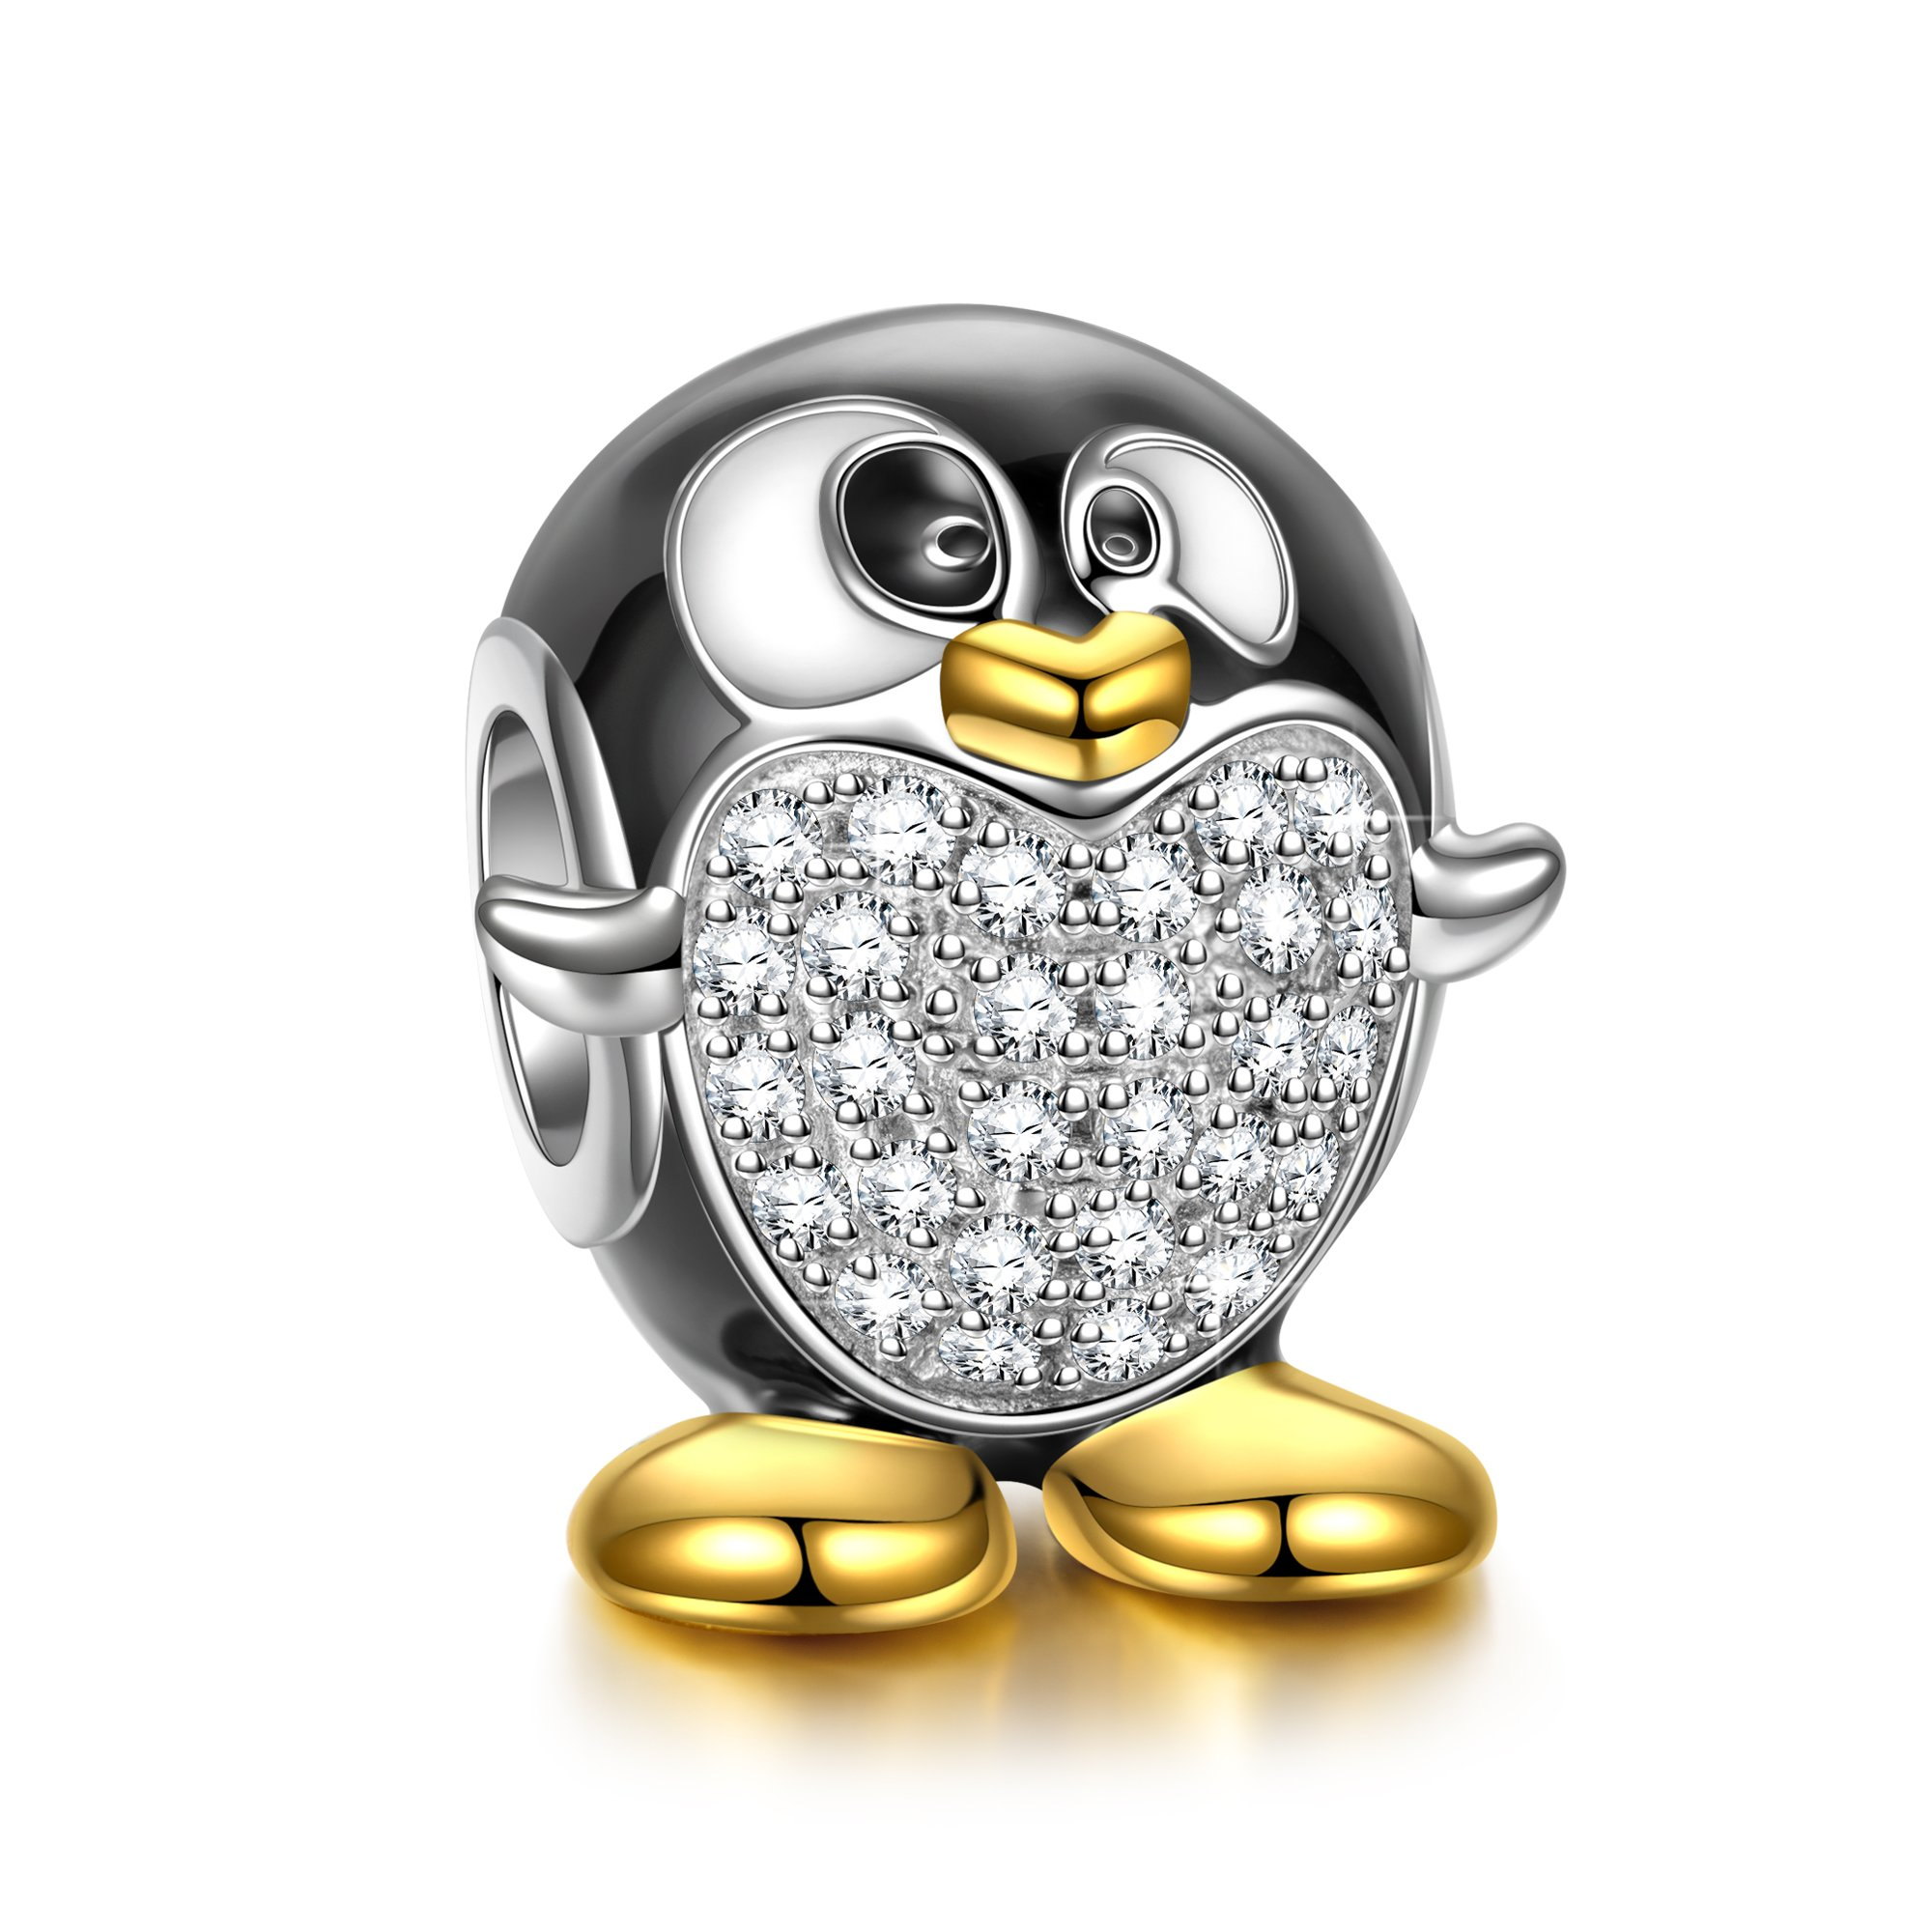 NINAQUEEN 925 Sterling Silver Penguin Animal Bead Charm for European Pandöra Charms Bracelets Birthday Anniversary Christmas Gifts for Her Teen Girls Kids Women Wife Daughter Mom Niece Sisters